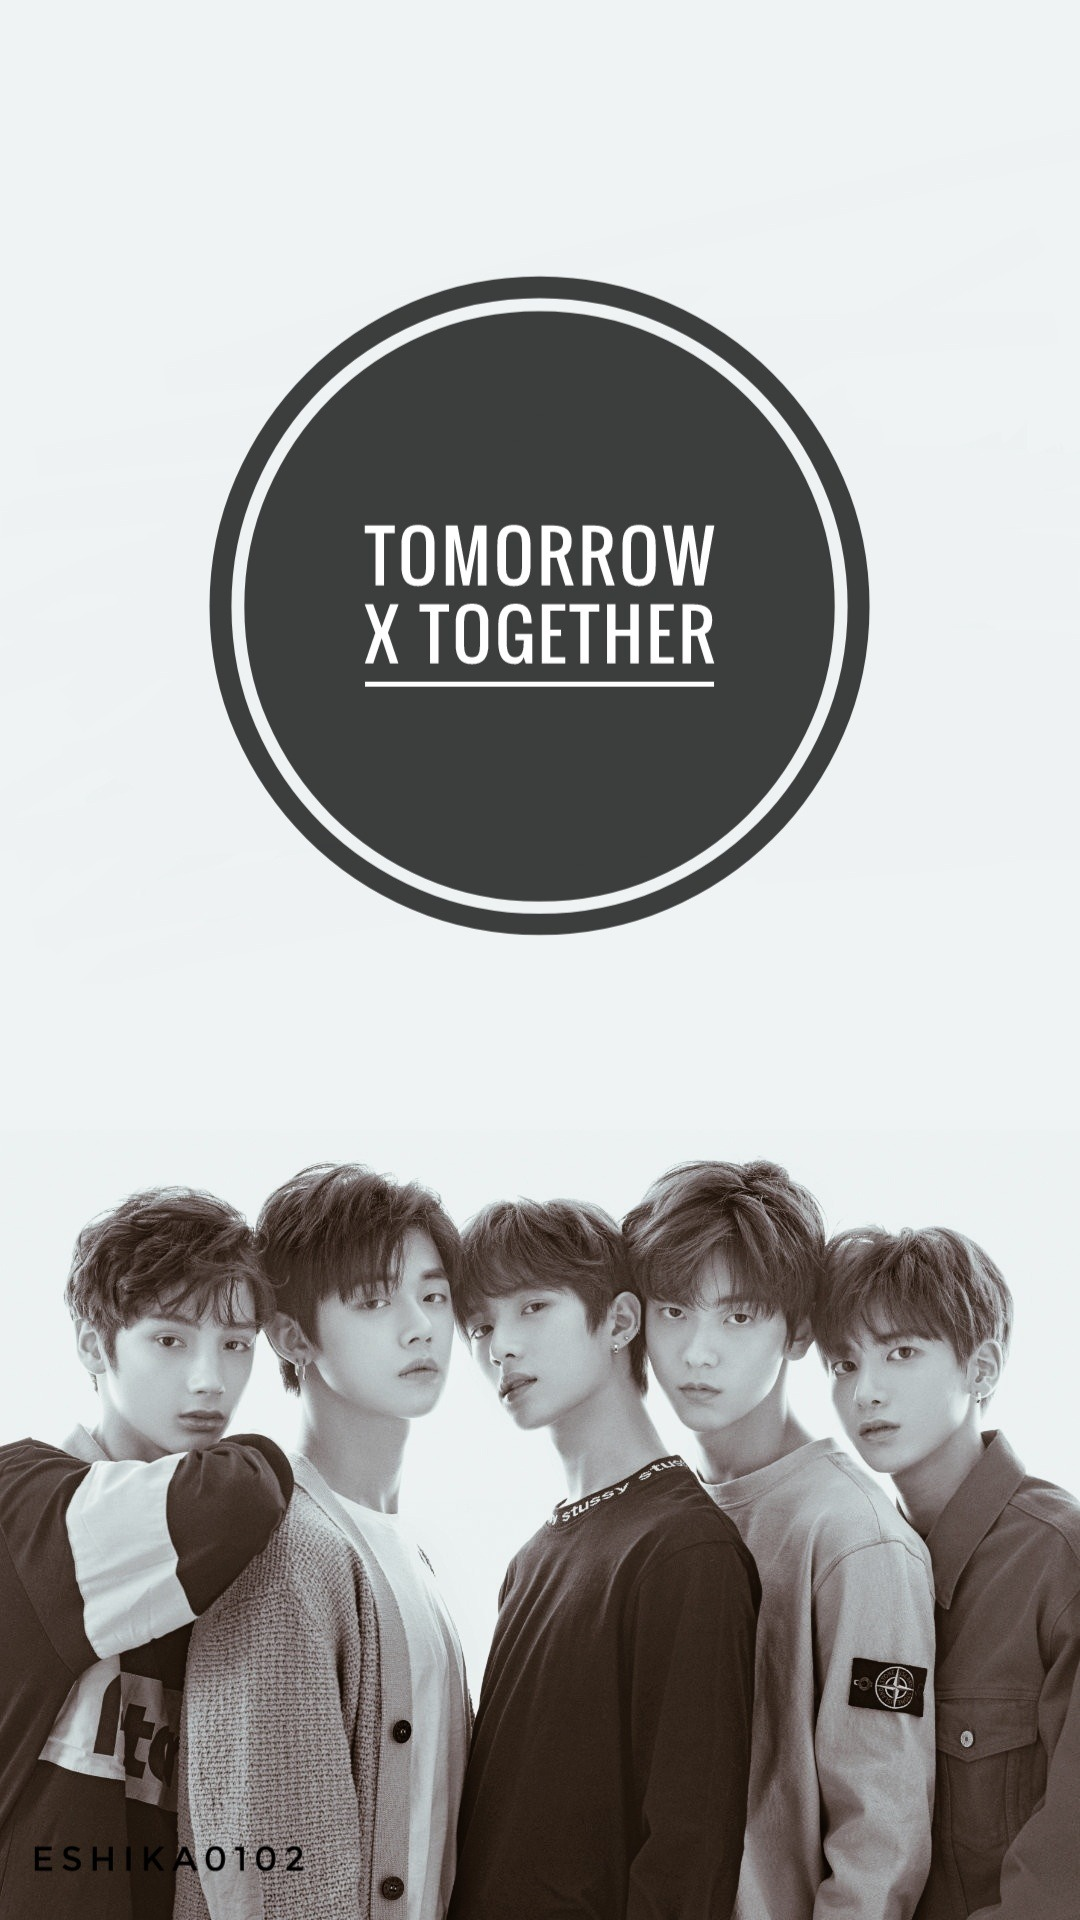 txt lockscreens Tumblr 1080x1920